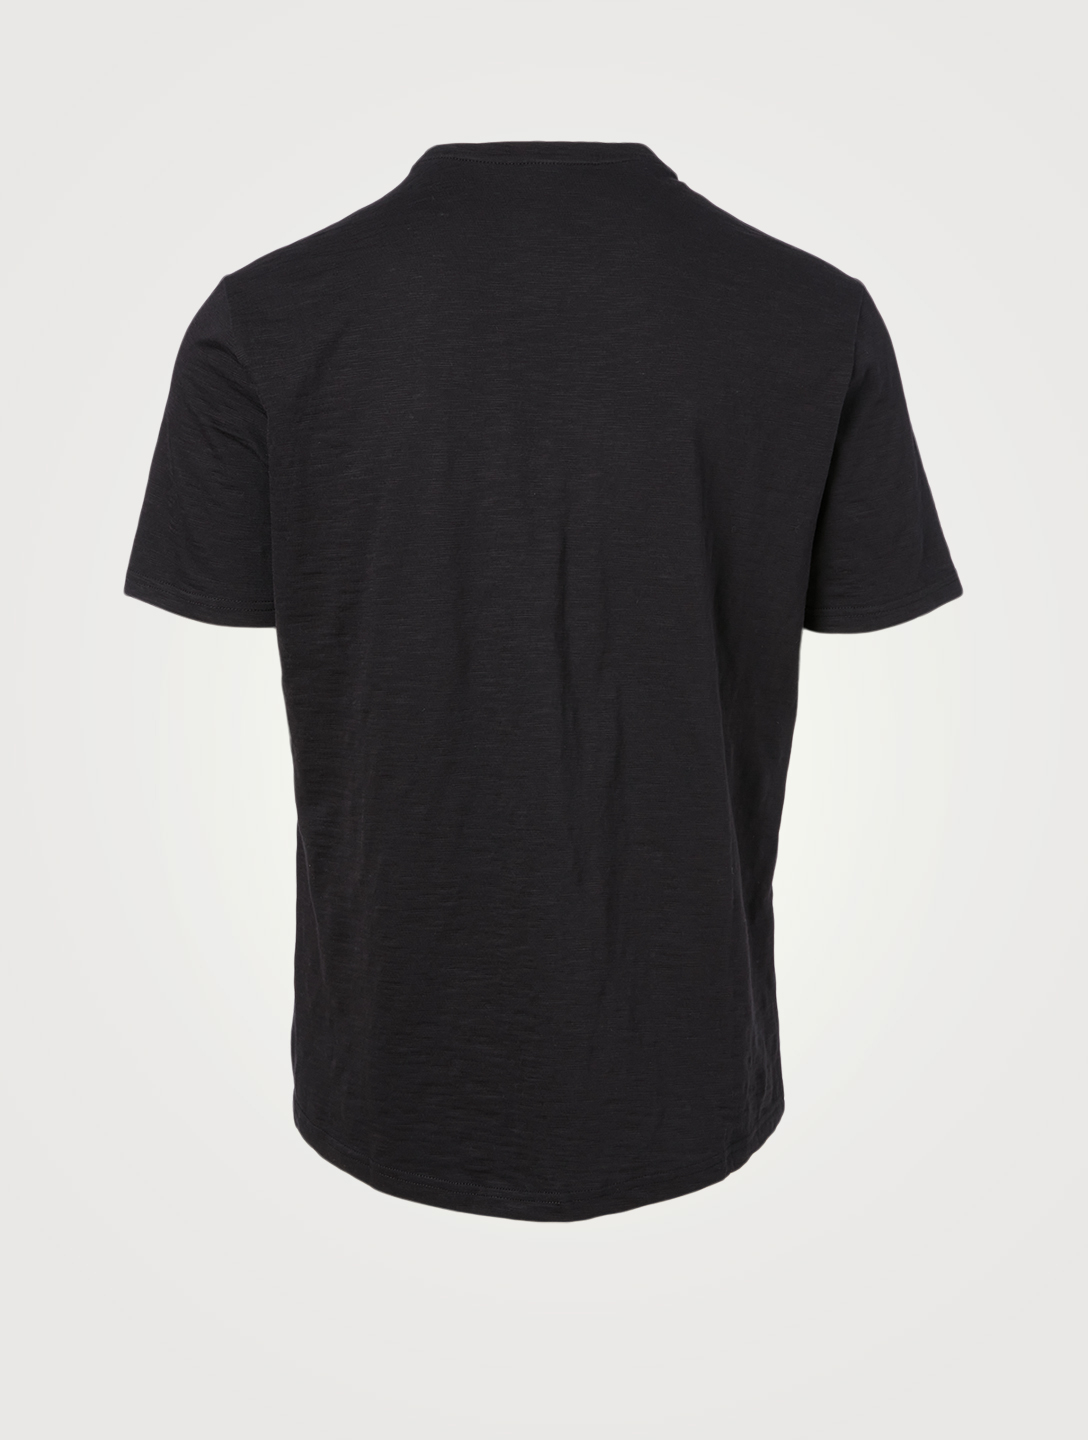 PAIGE Kenneth Cotton T-Shirt Men's Black